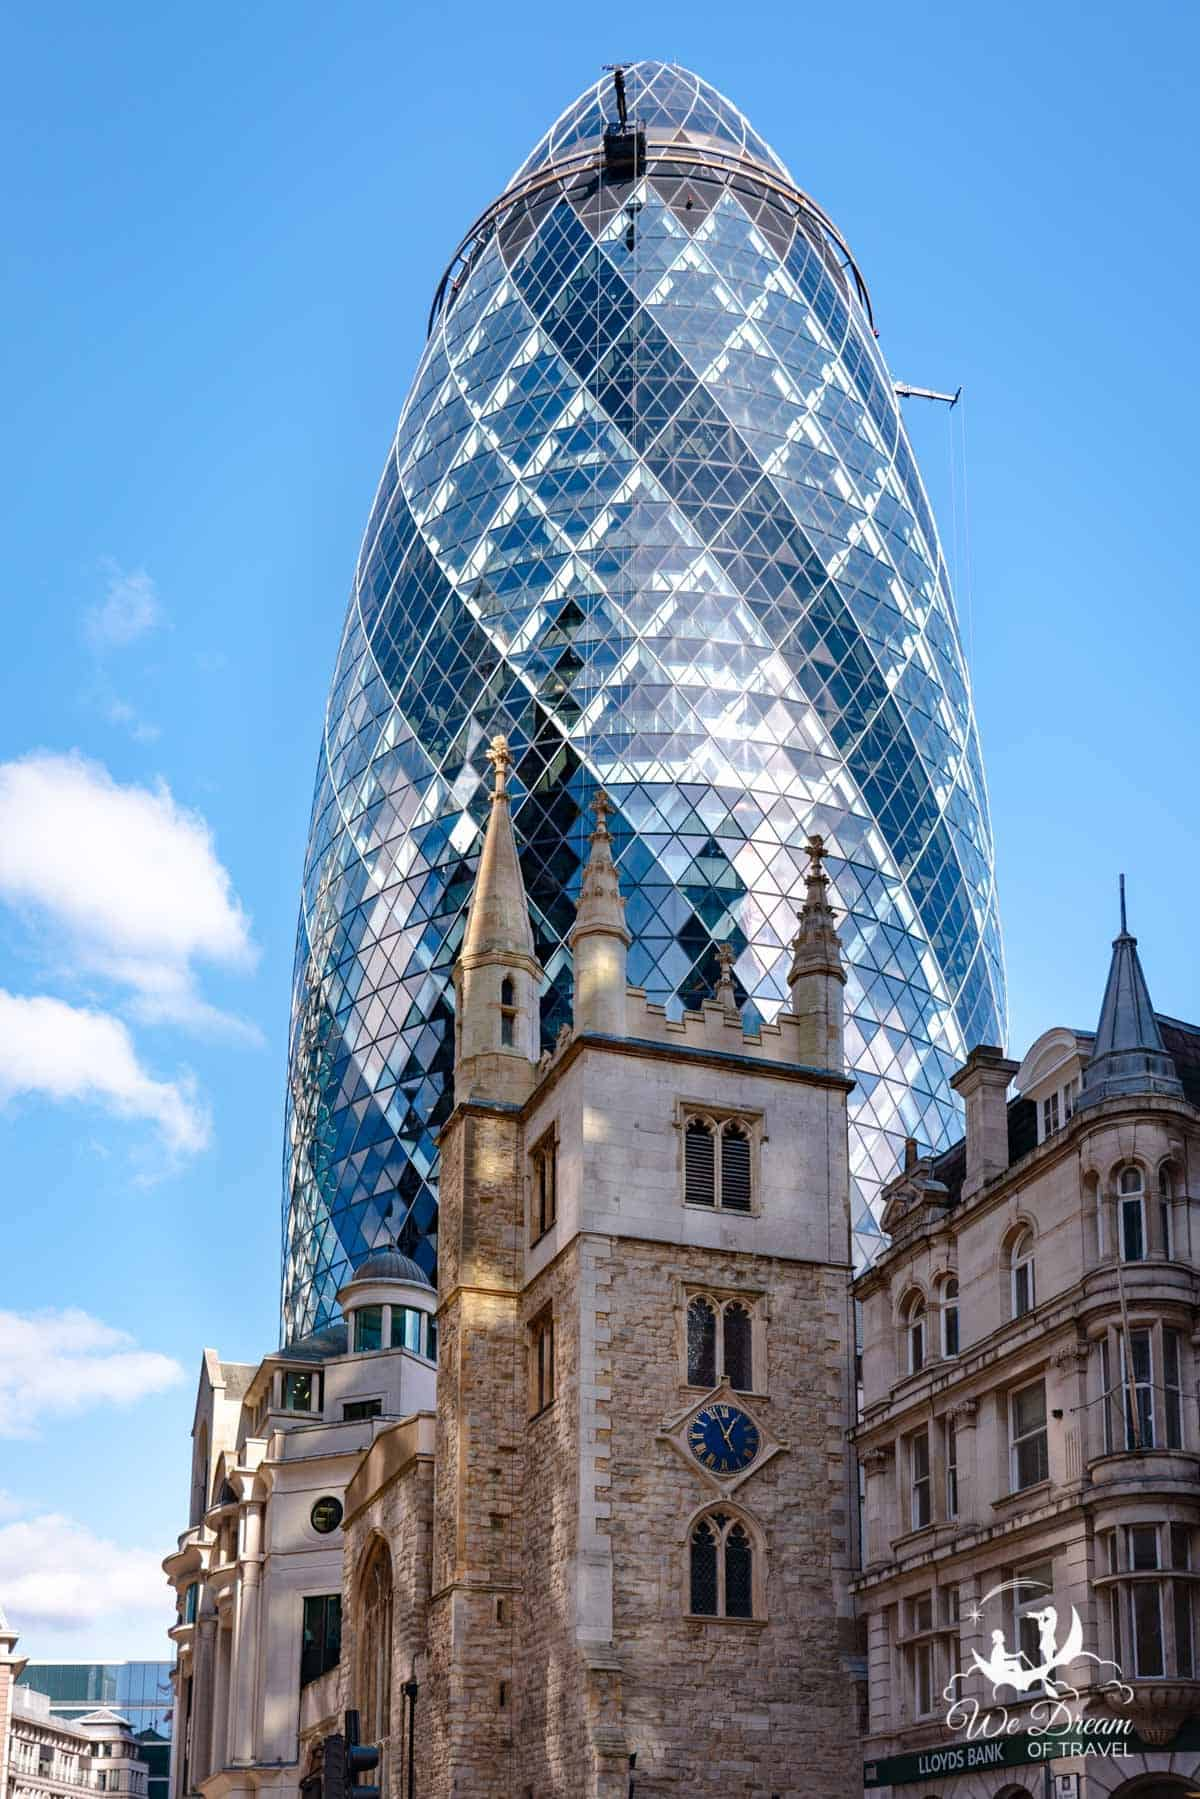 The Gherkin is one of the most famous buildings in London